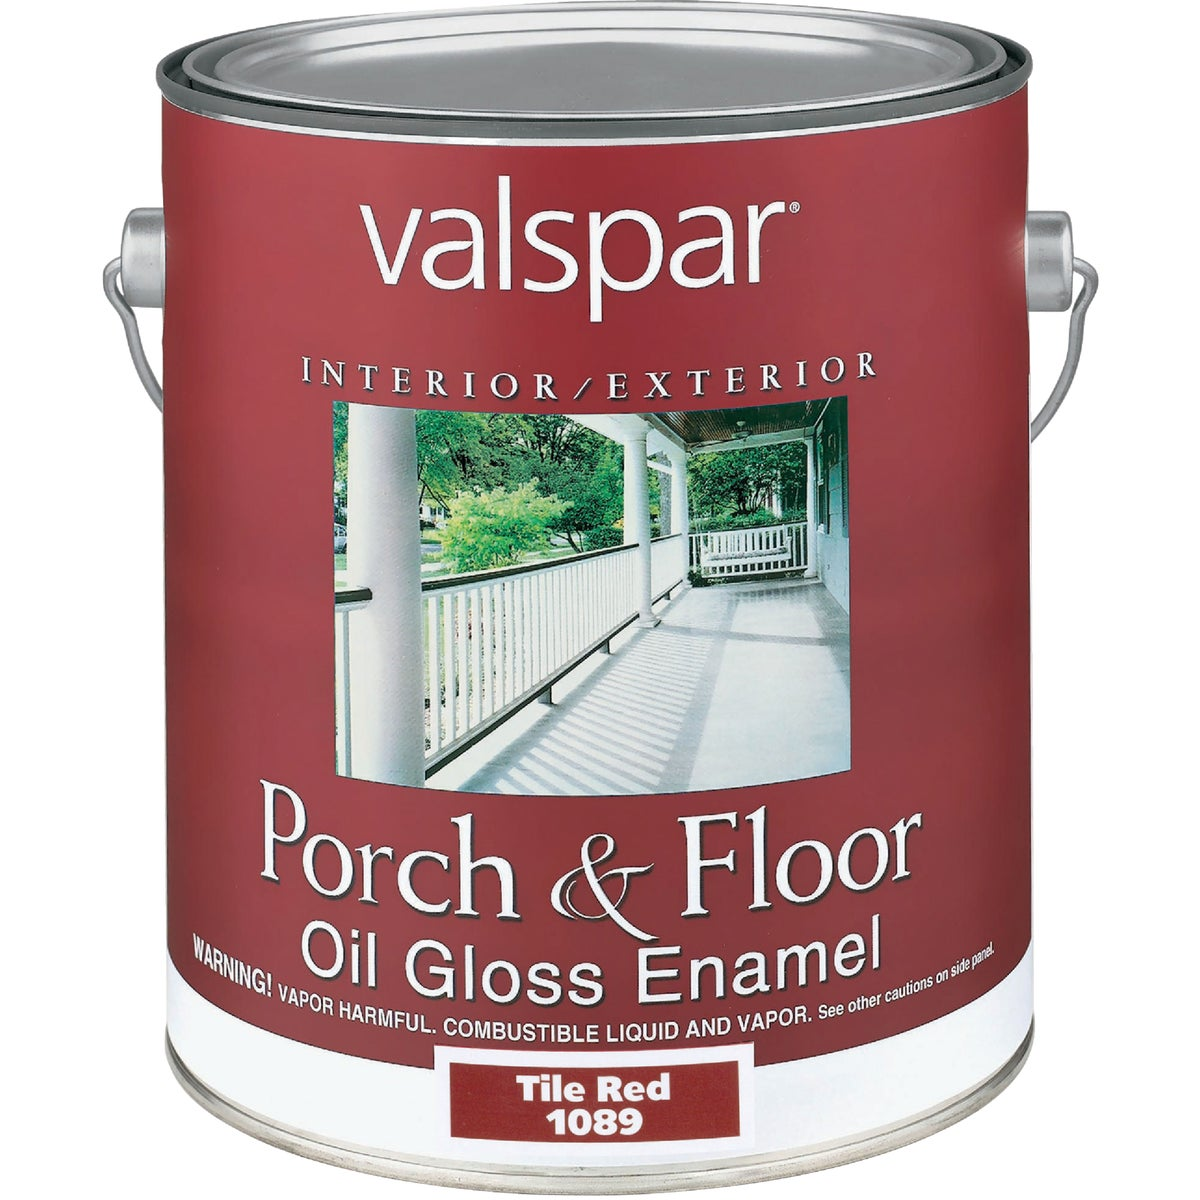 TILE RD OIL FLOOR ENAMEL - 027.0001089.007 by Valspar Corp